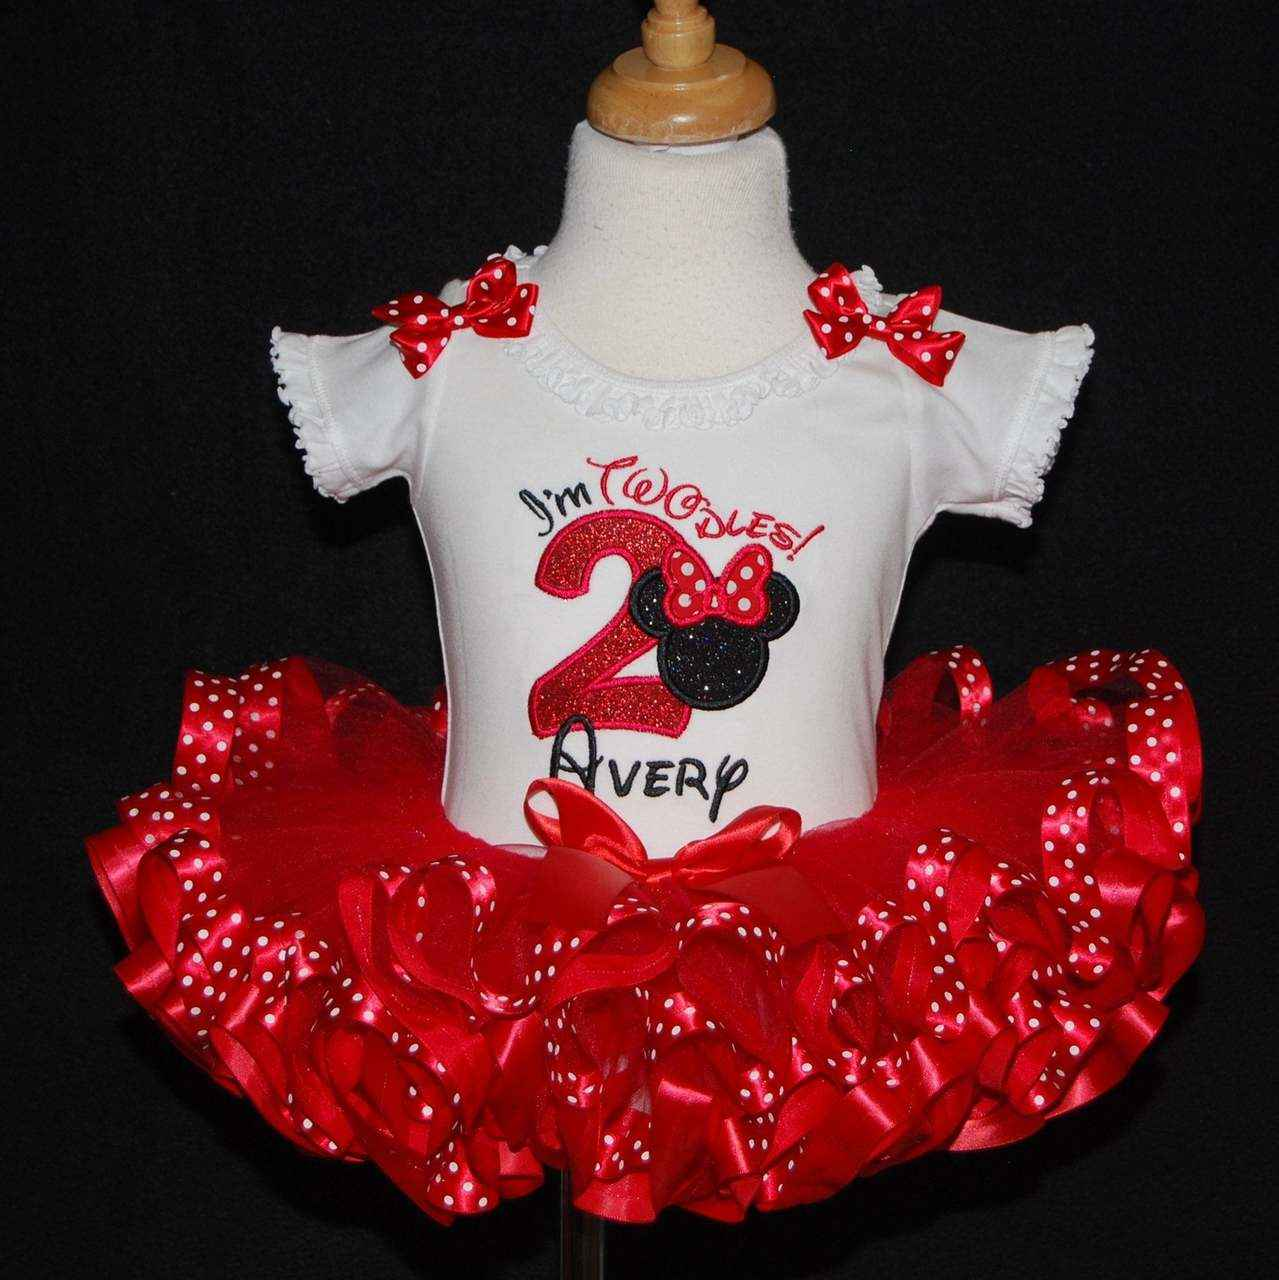 minnie mouse birthday outfit oh twodles Im two minnie mouse 2nd birthday minnie mouse outfit oh toodles red minnie mouse Im twodles dress